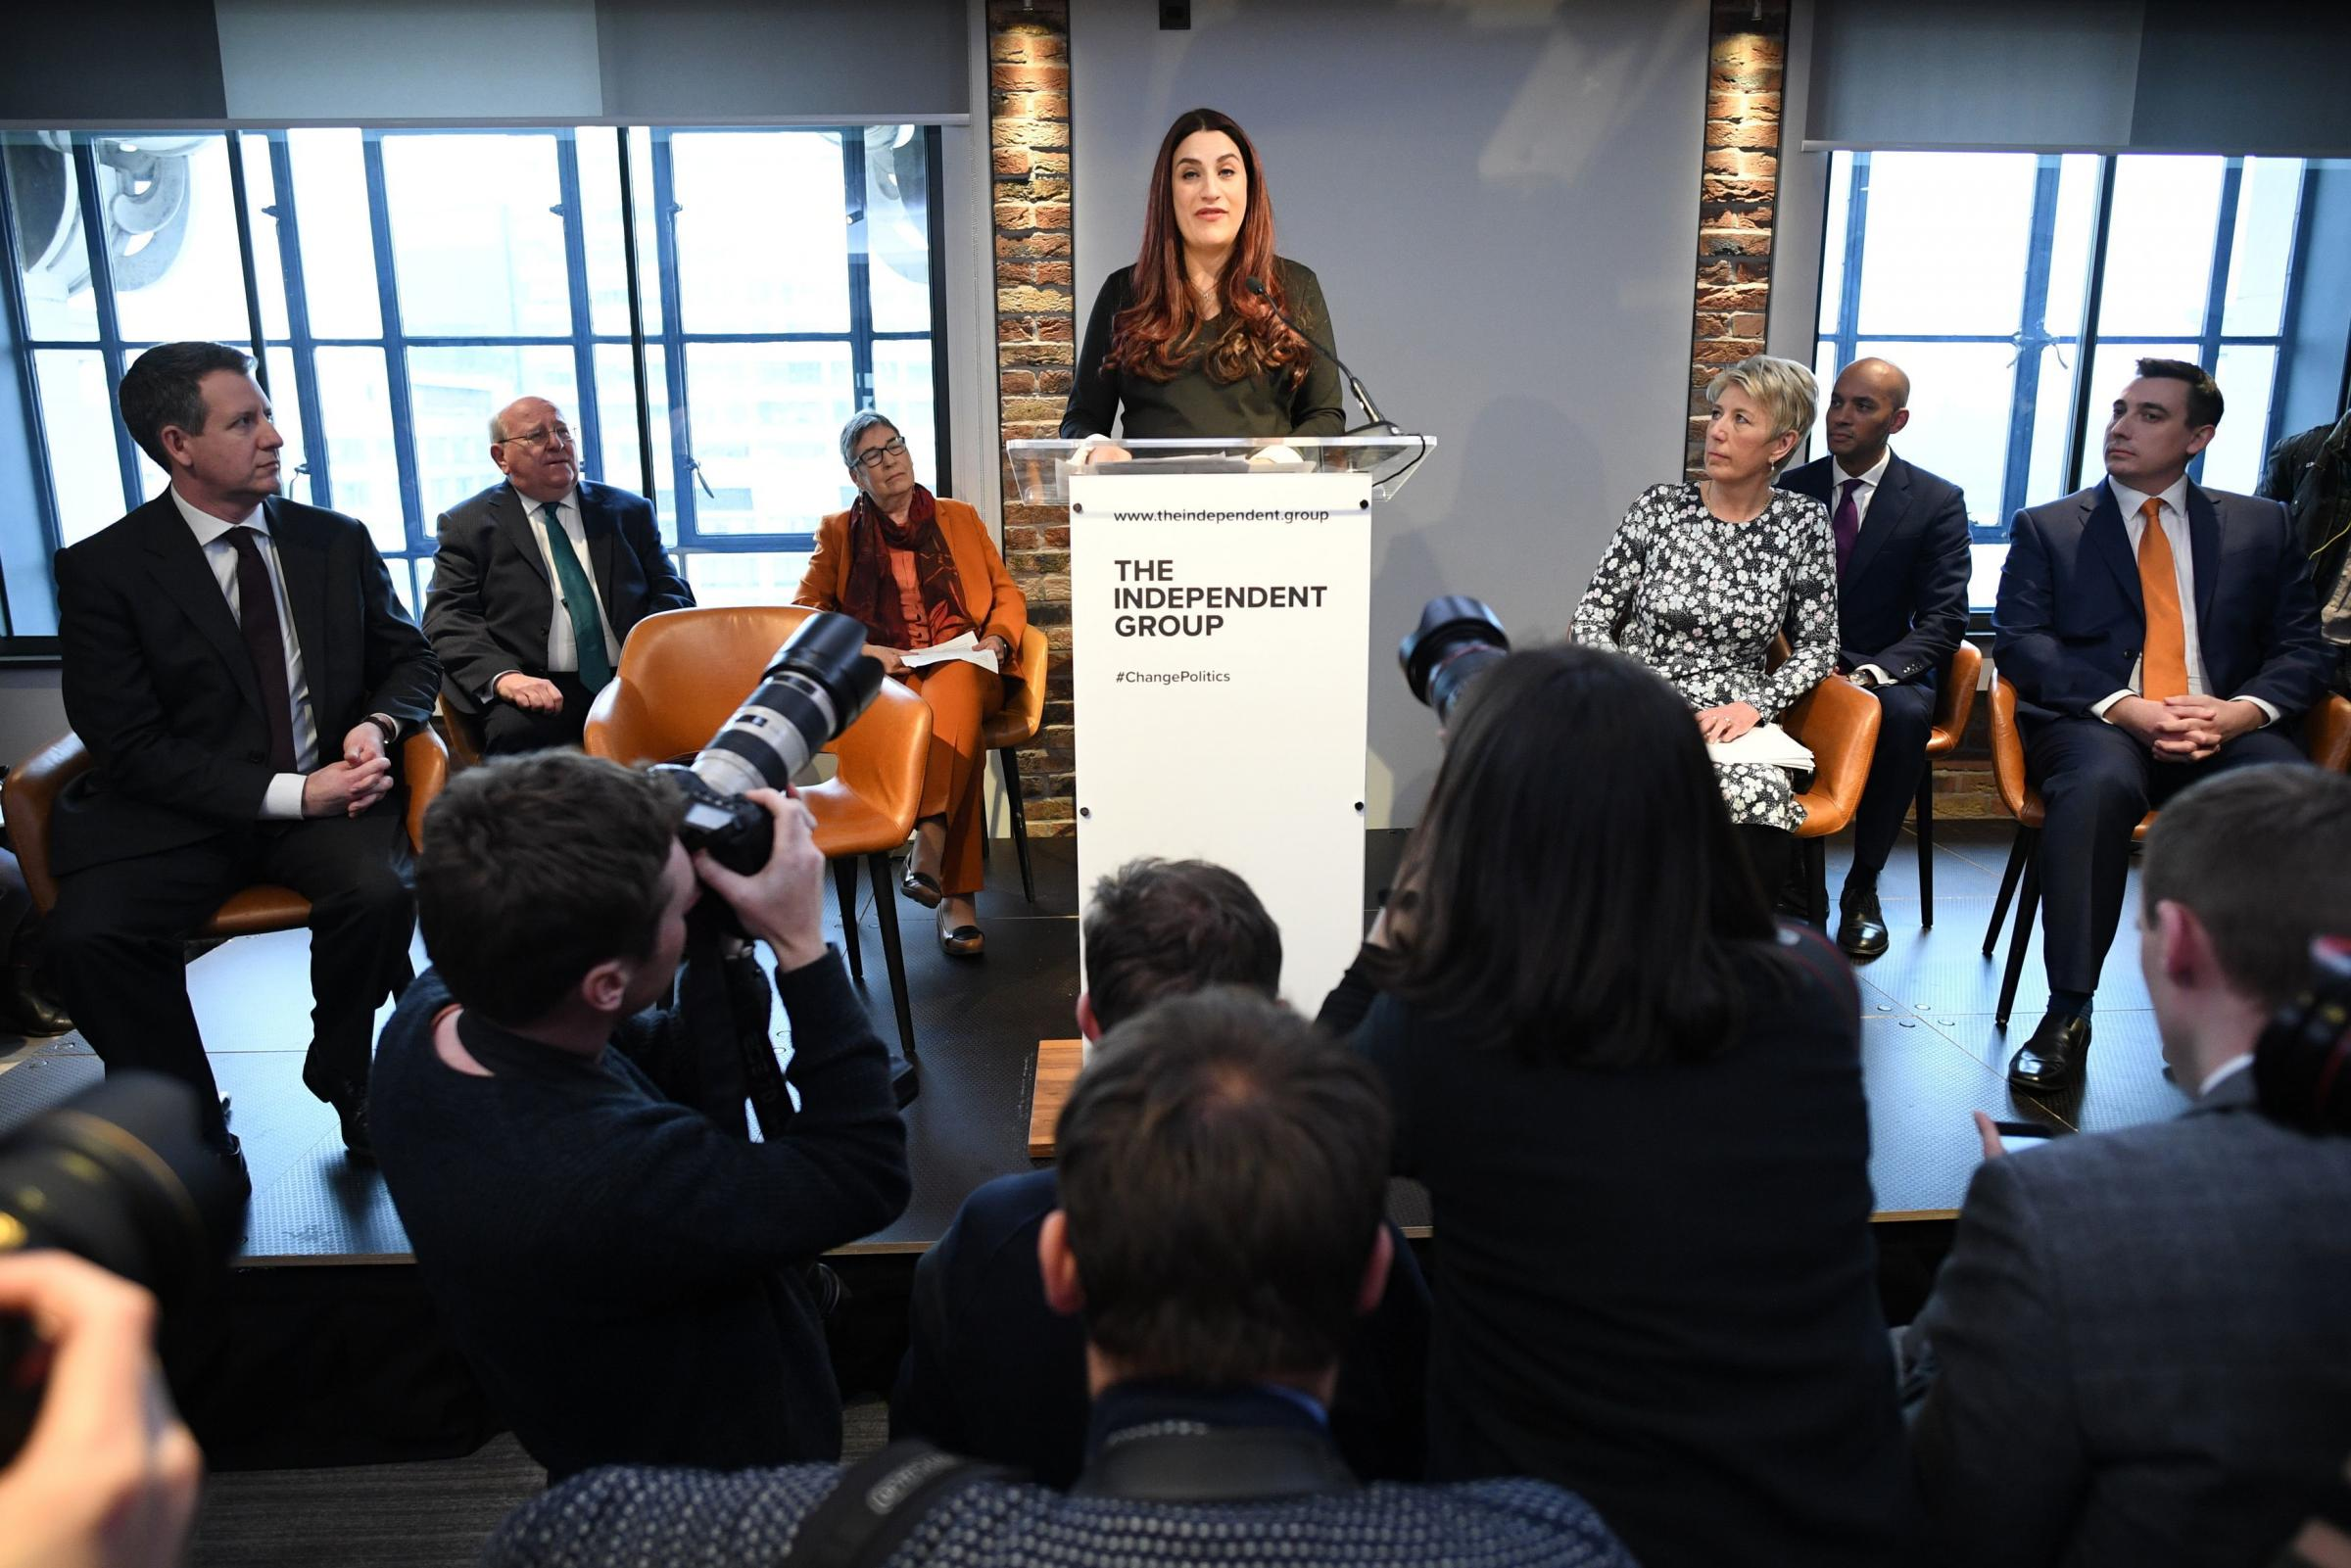 Labour MP Luciana Berger who has announced her resignation during a press conference at County Hall in Westminster, London where a group of six Labour MPs, including Chris Leslie, Chuka Umunna, Gavin Shuker, Angela Smith and Mike Gapes announced their res